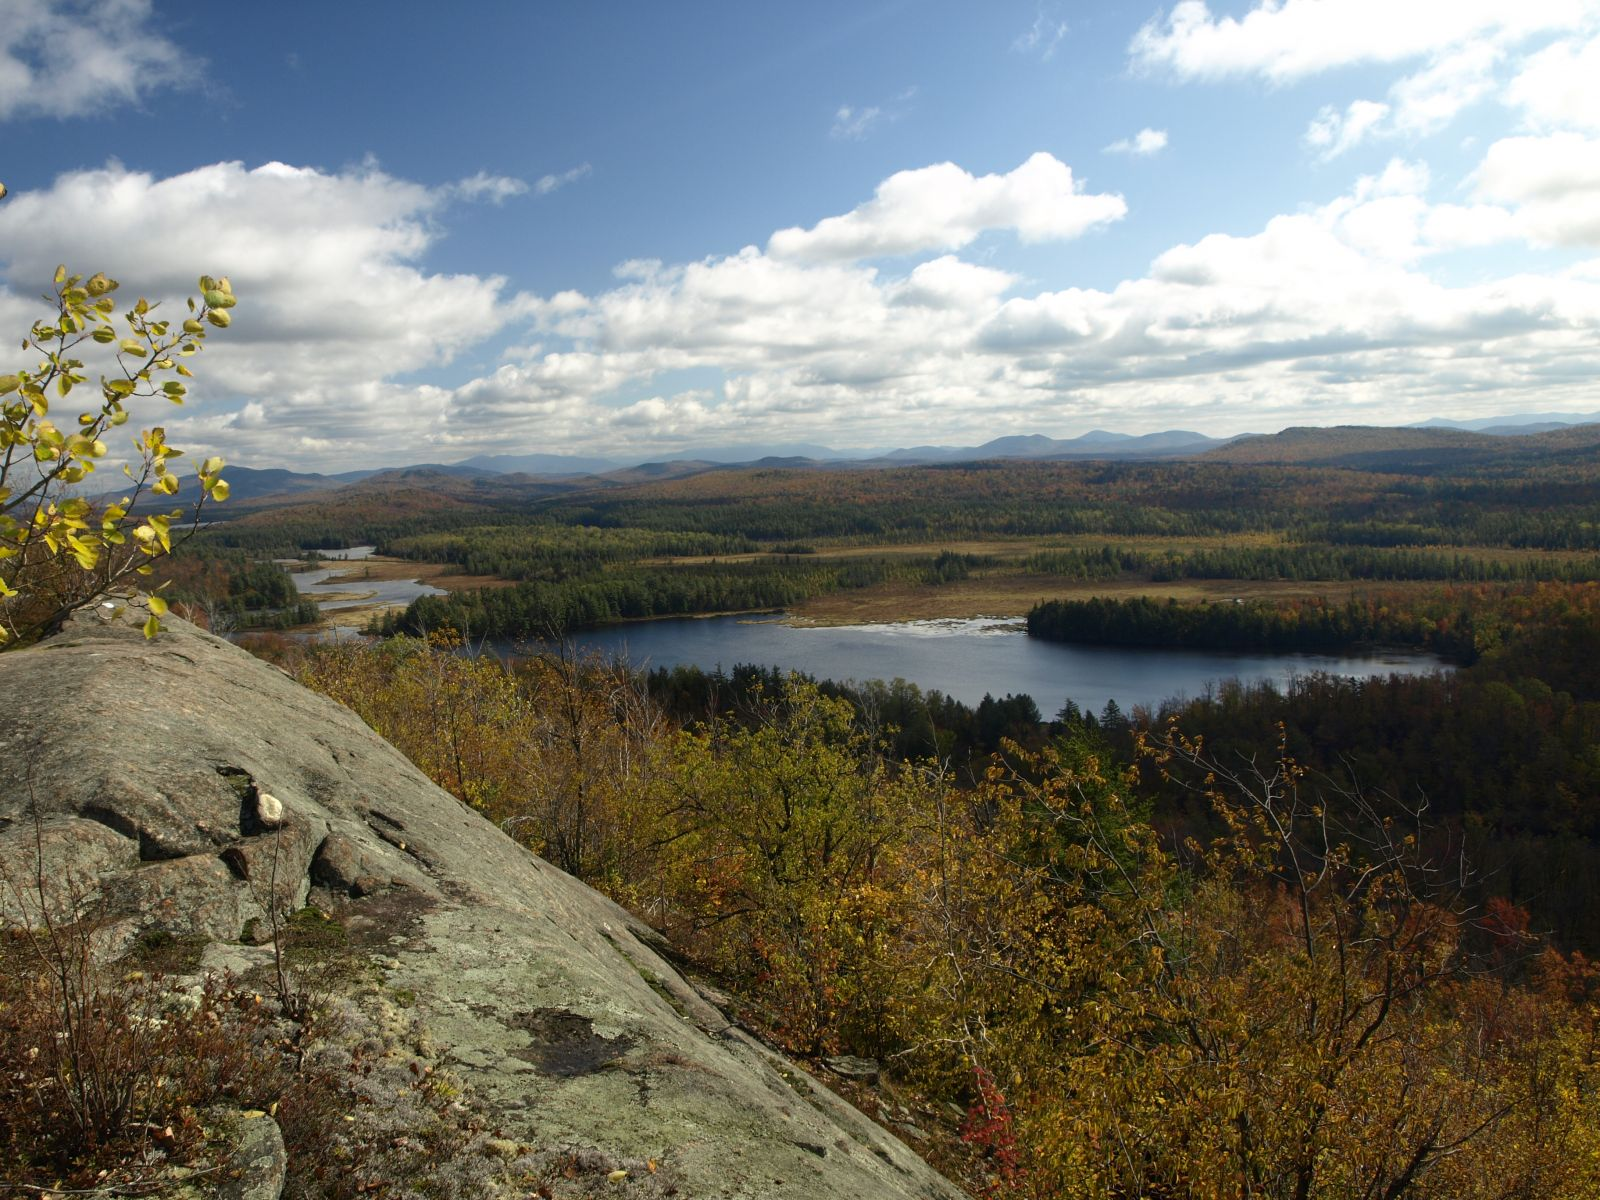 Autumn view from the overlook